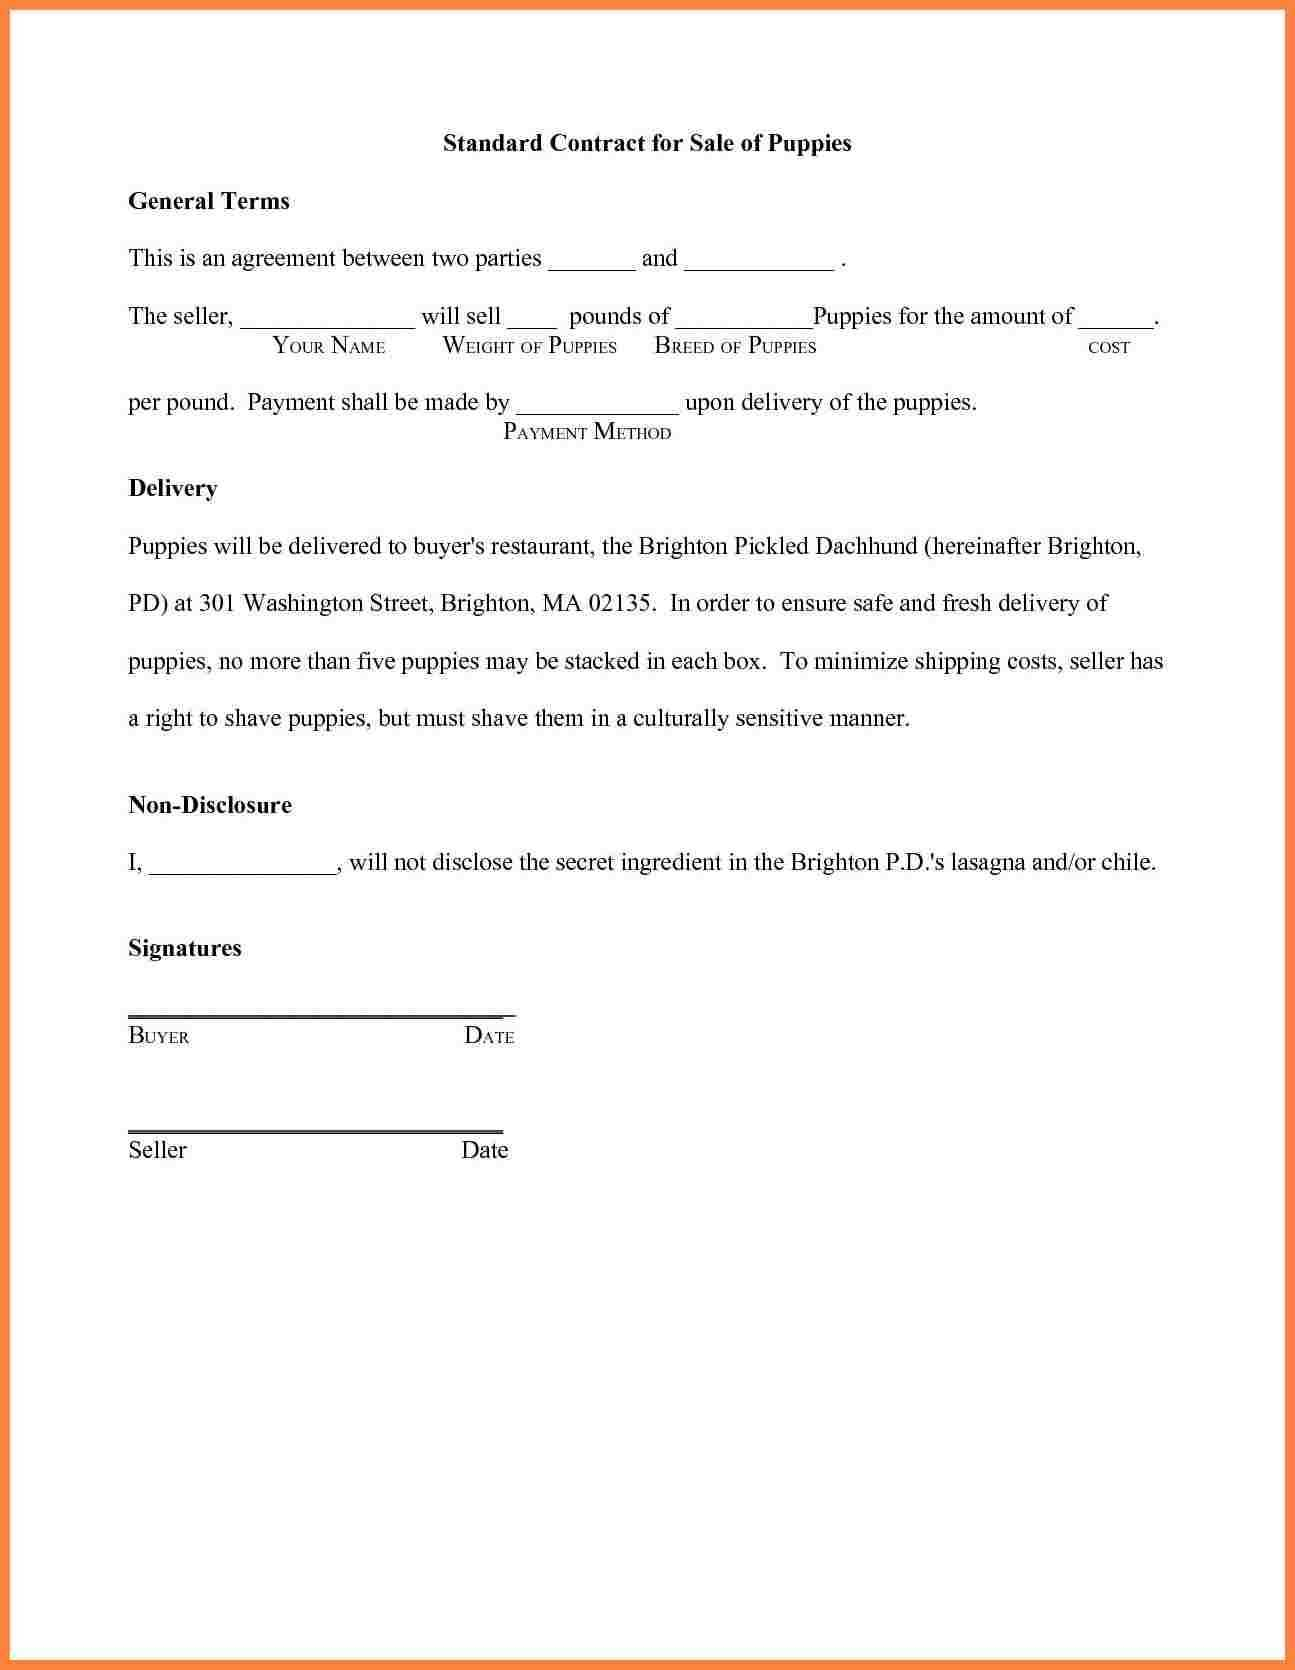 How To Write A Loan Agreement Investment Loan Agreement Template 114930 Simple Loan Agreement